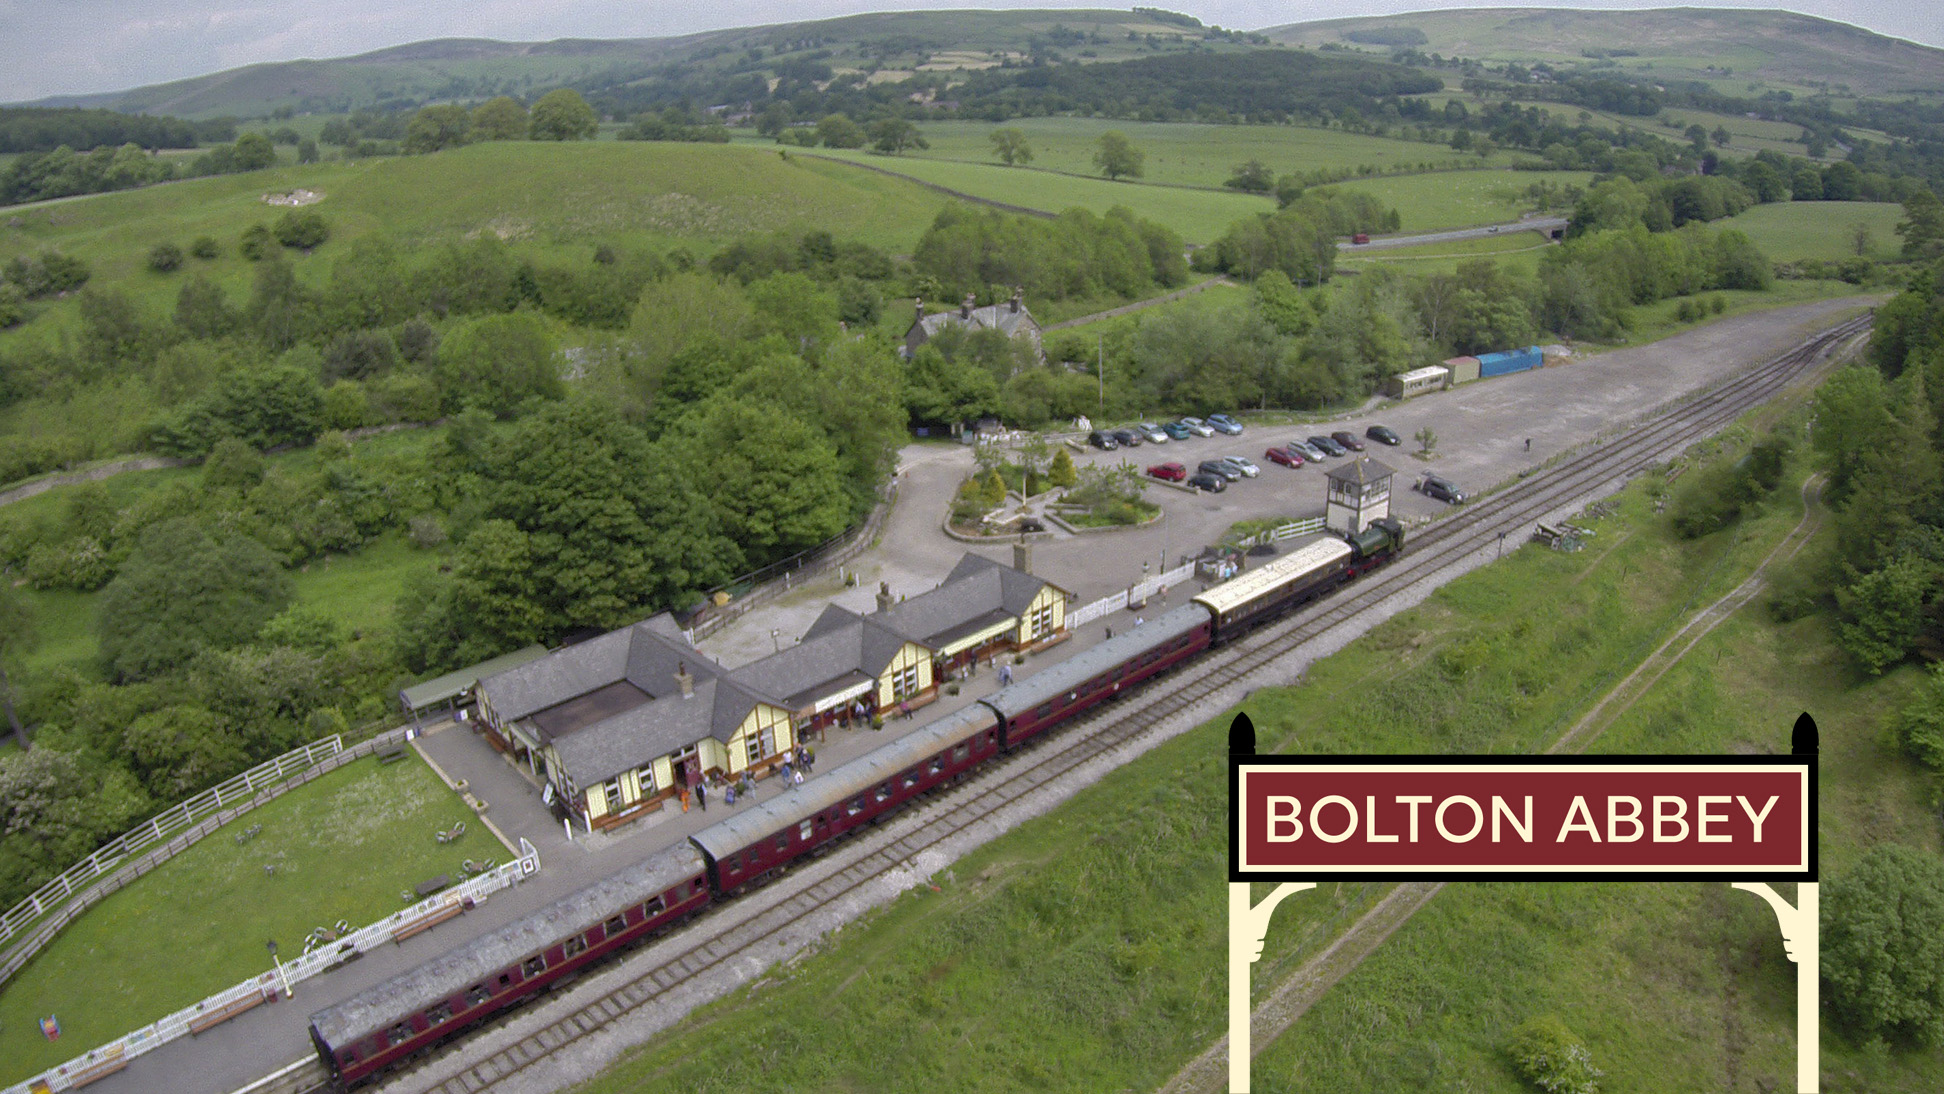 Bolton Abbey Station Embsay Amp Bolton Abbey Steam Railway